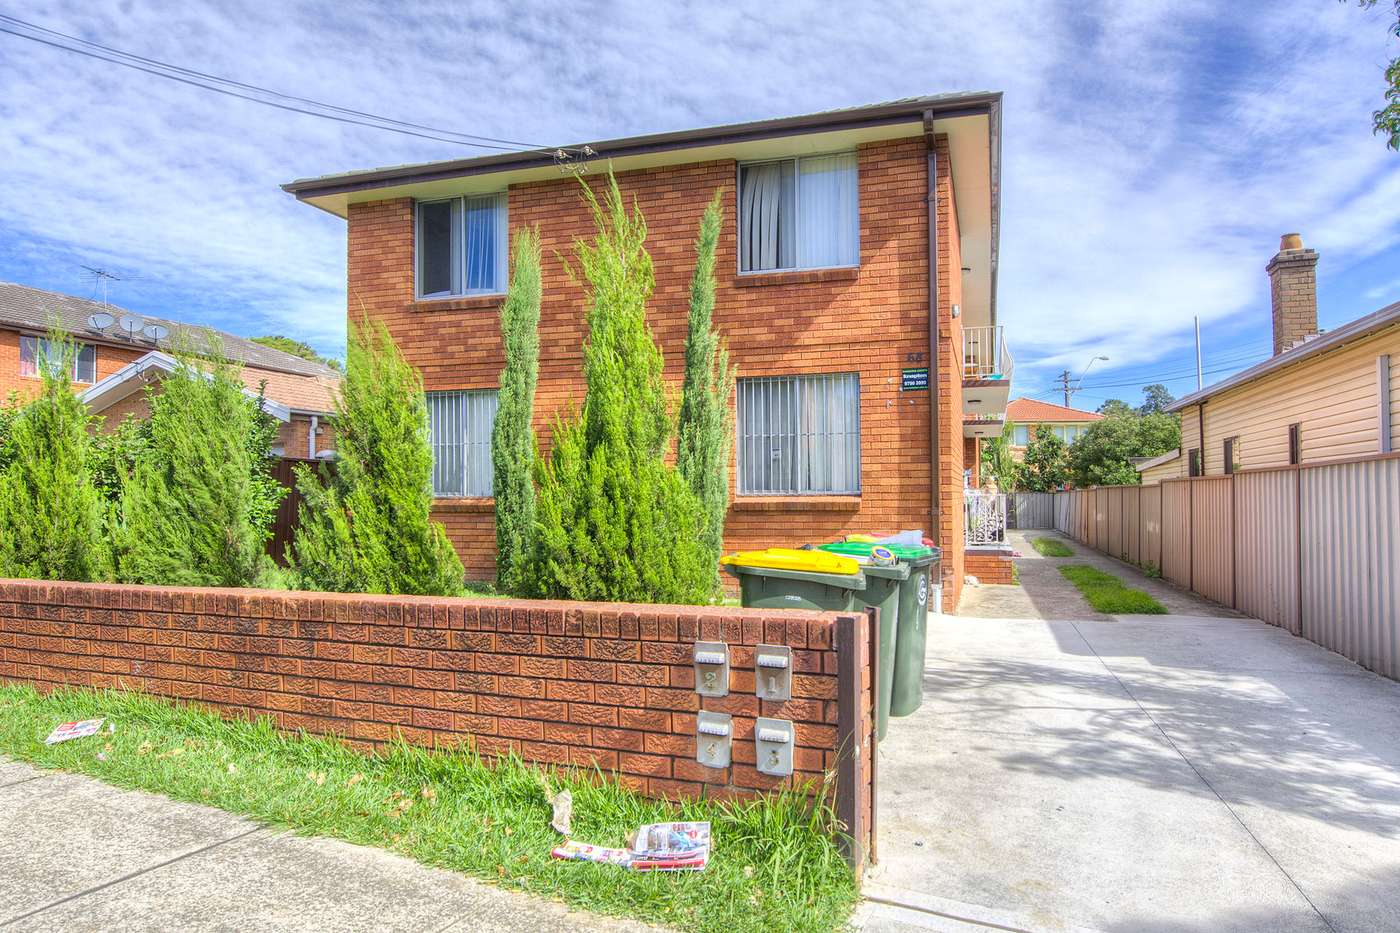 Main view of Homely apartment listing, 4/68 Hillard Street, Wiley Park, NSW 2195